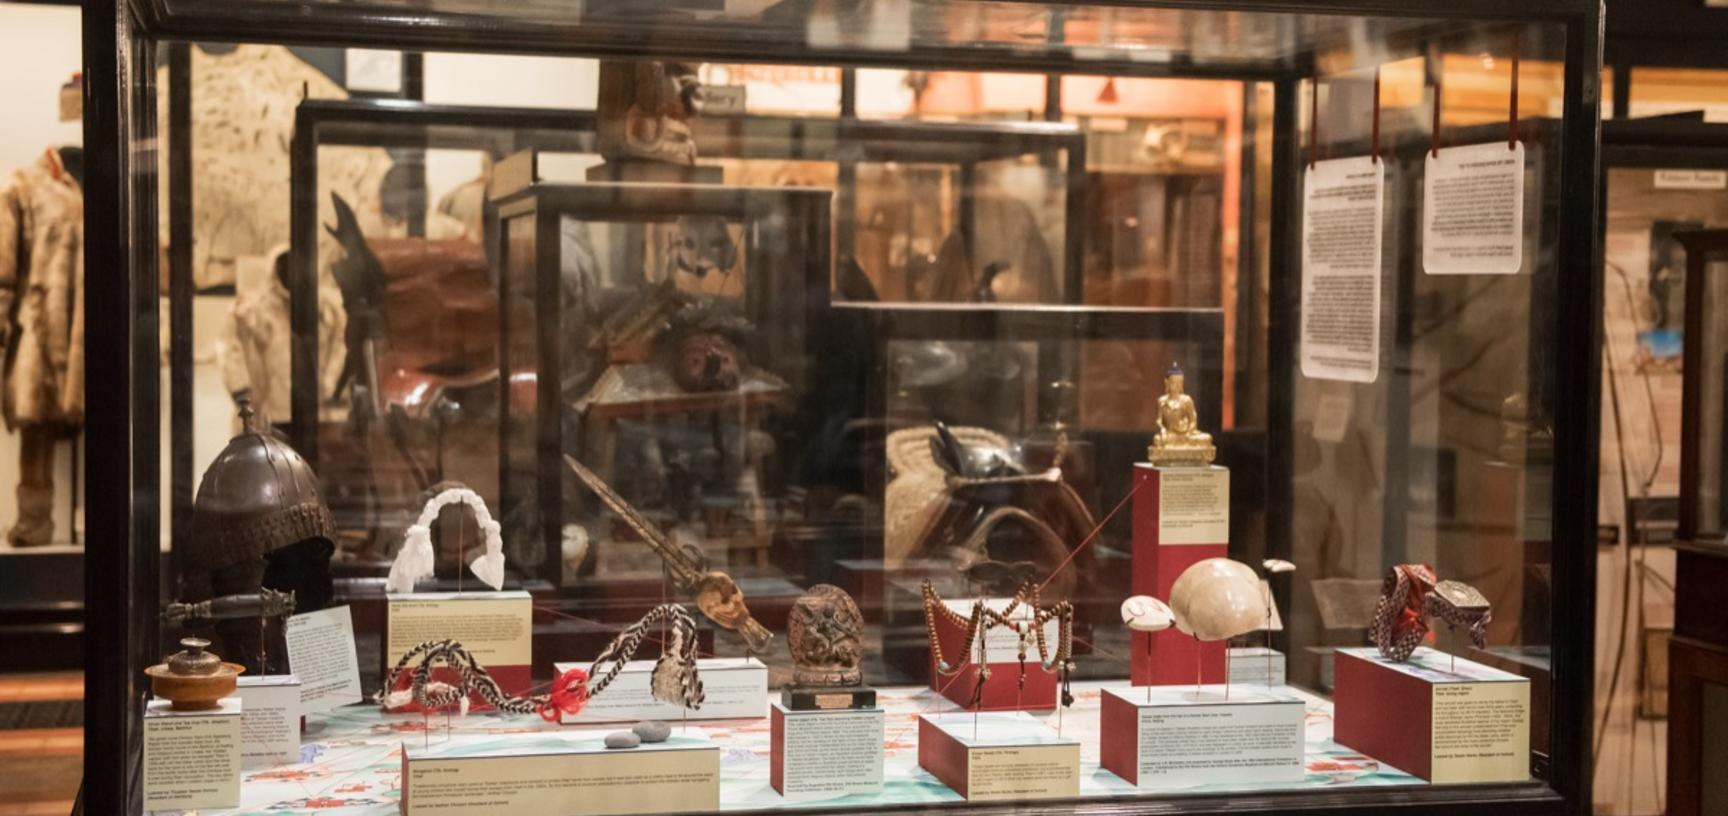 'Tibetan Objects in Transition', Pitt Rivers Museum, University of Oxford, 31 August 2018 to 25 January 2019.